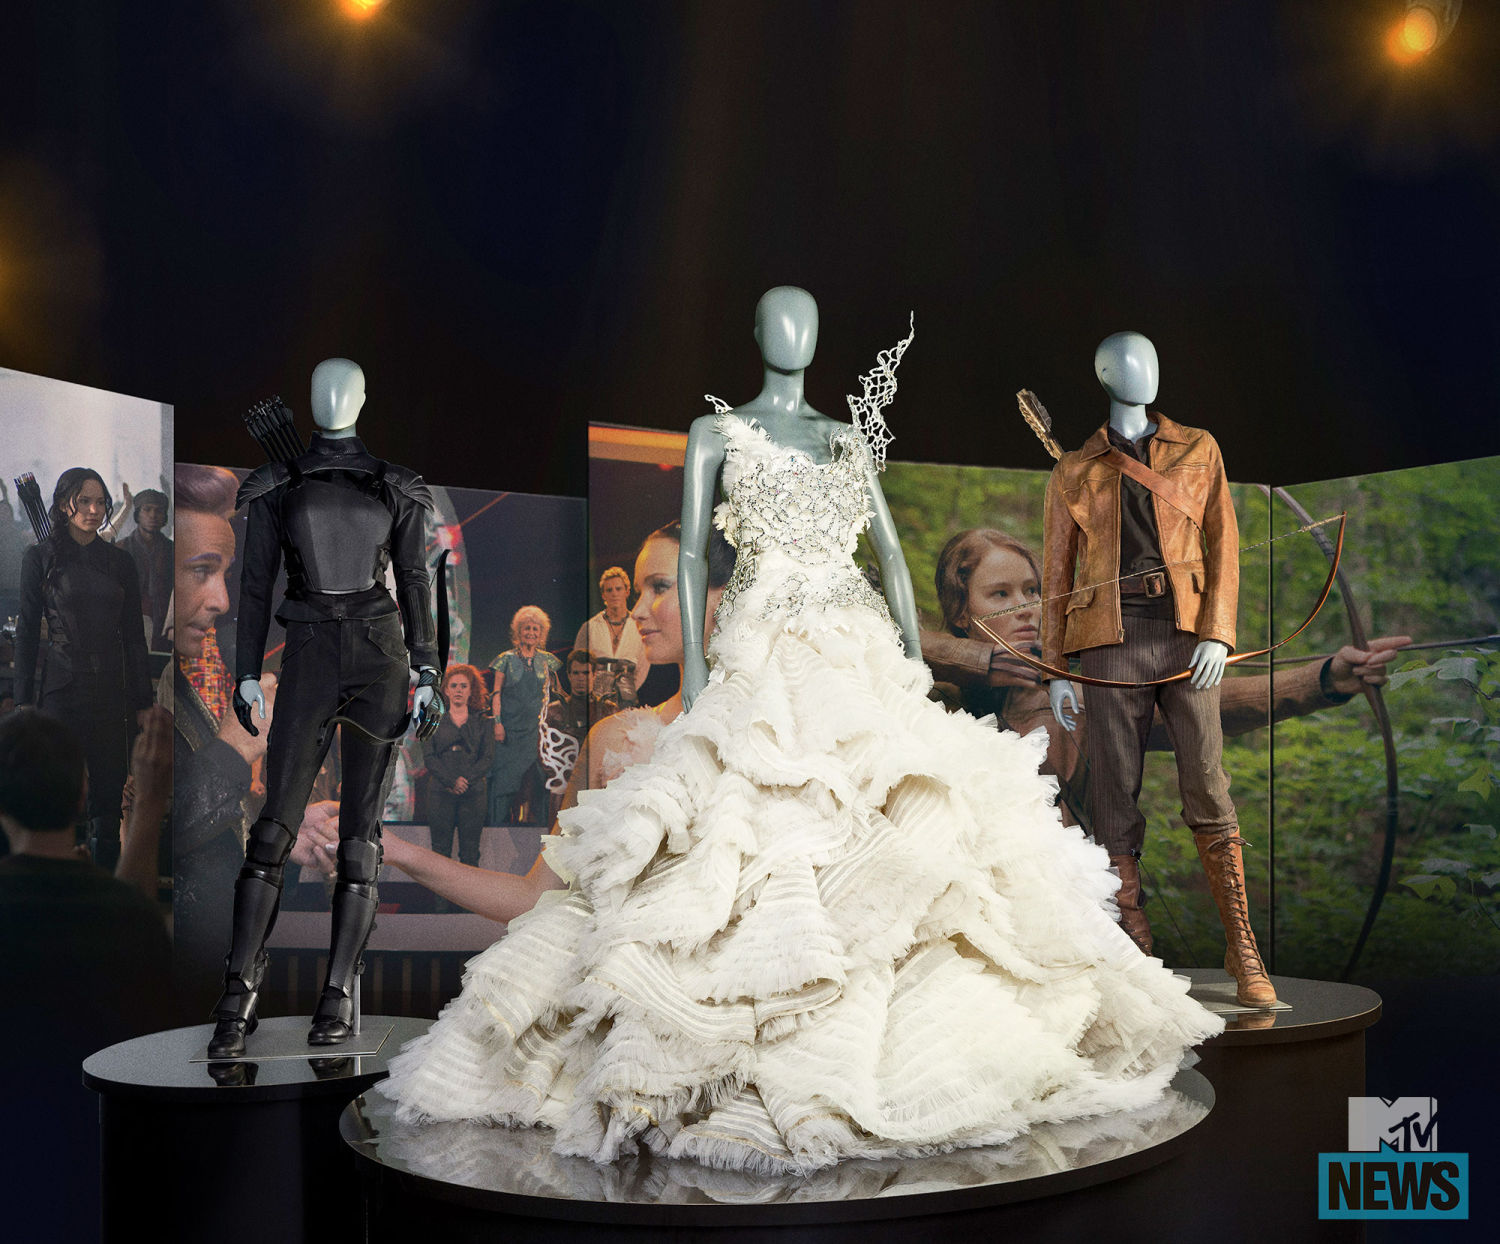 The hunger games catching fire katniss wedding dress designer - See Katniss S Most Iconic Costumes Up Close Including The Mockingjay Dress And The Mockingjay Armor See Pivotal Moments From